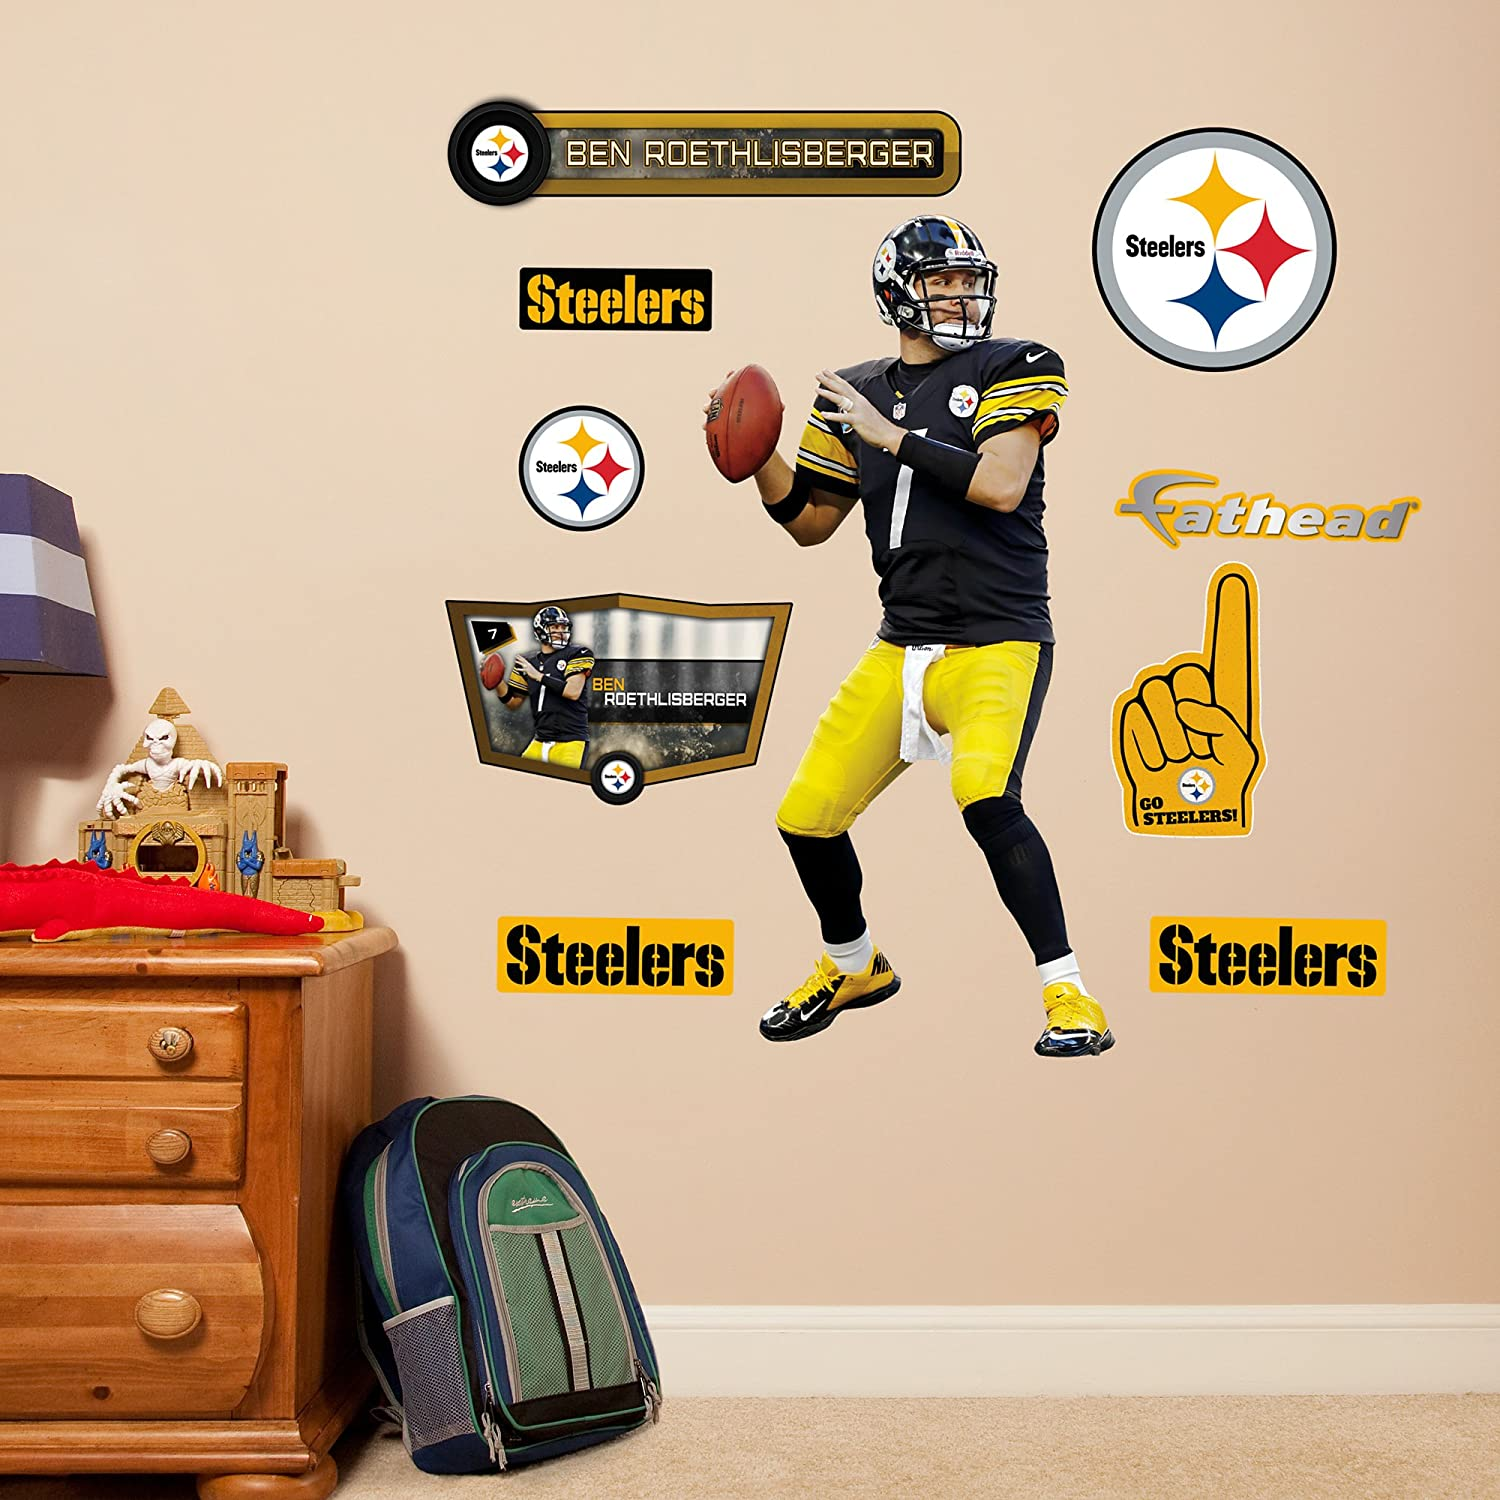 Life-Size Wall Stickers